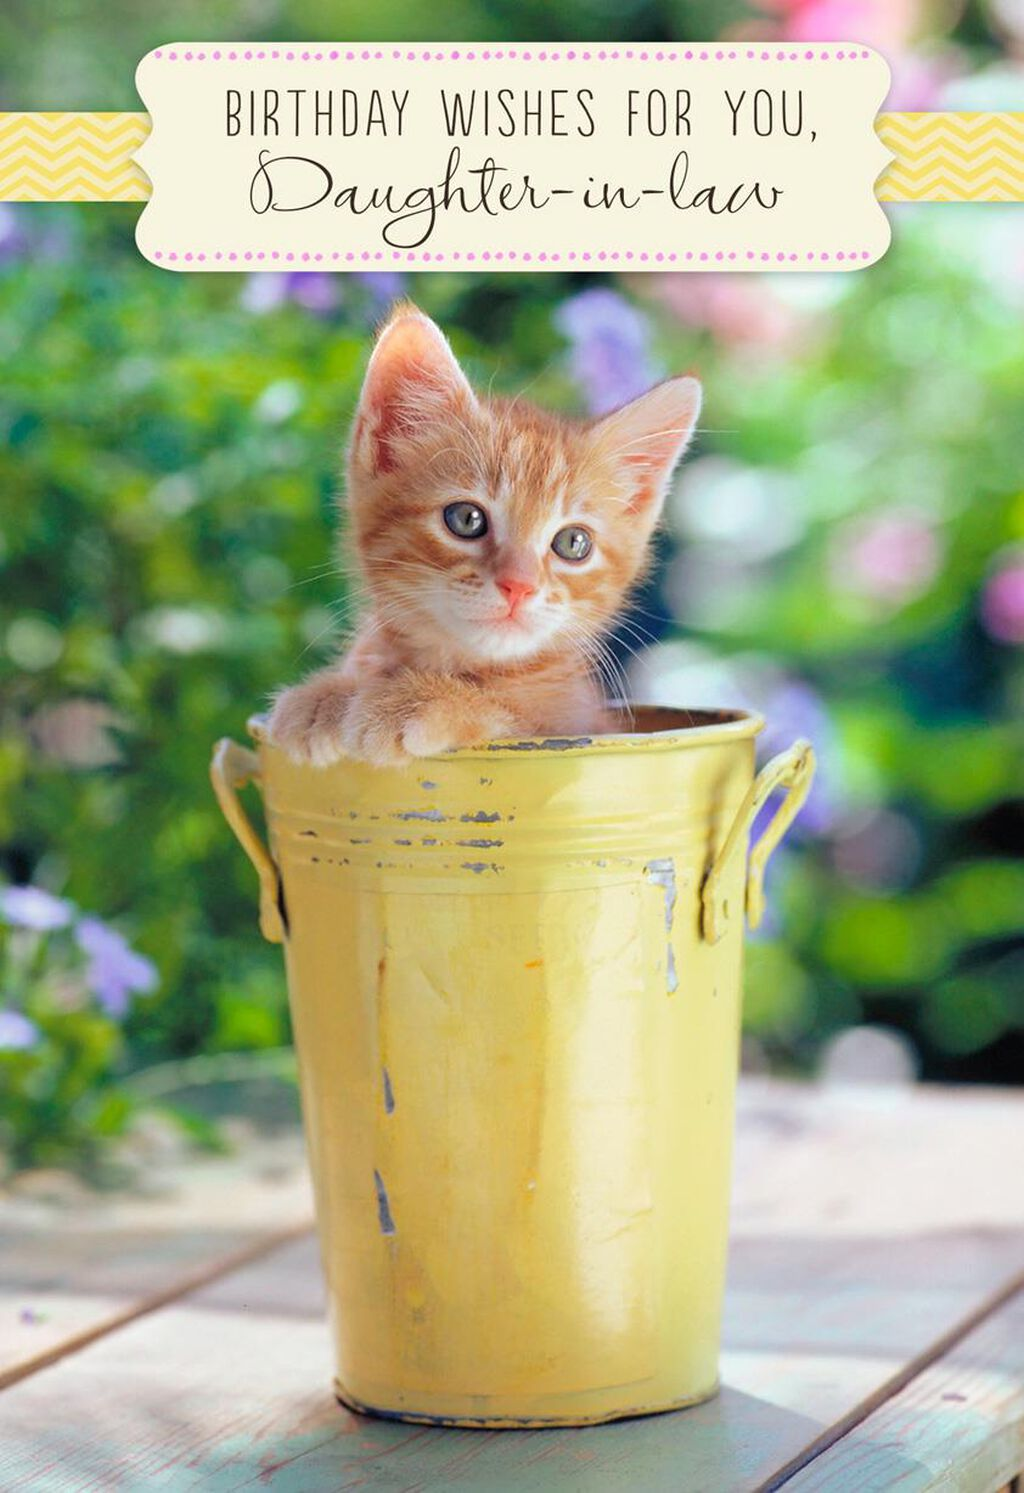 Kitten In Bucket Birthday Card For Daughter Law